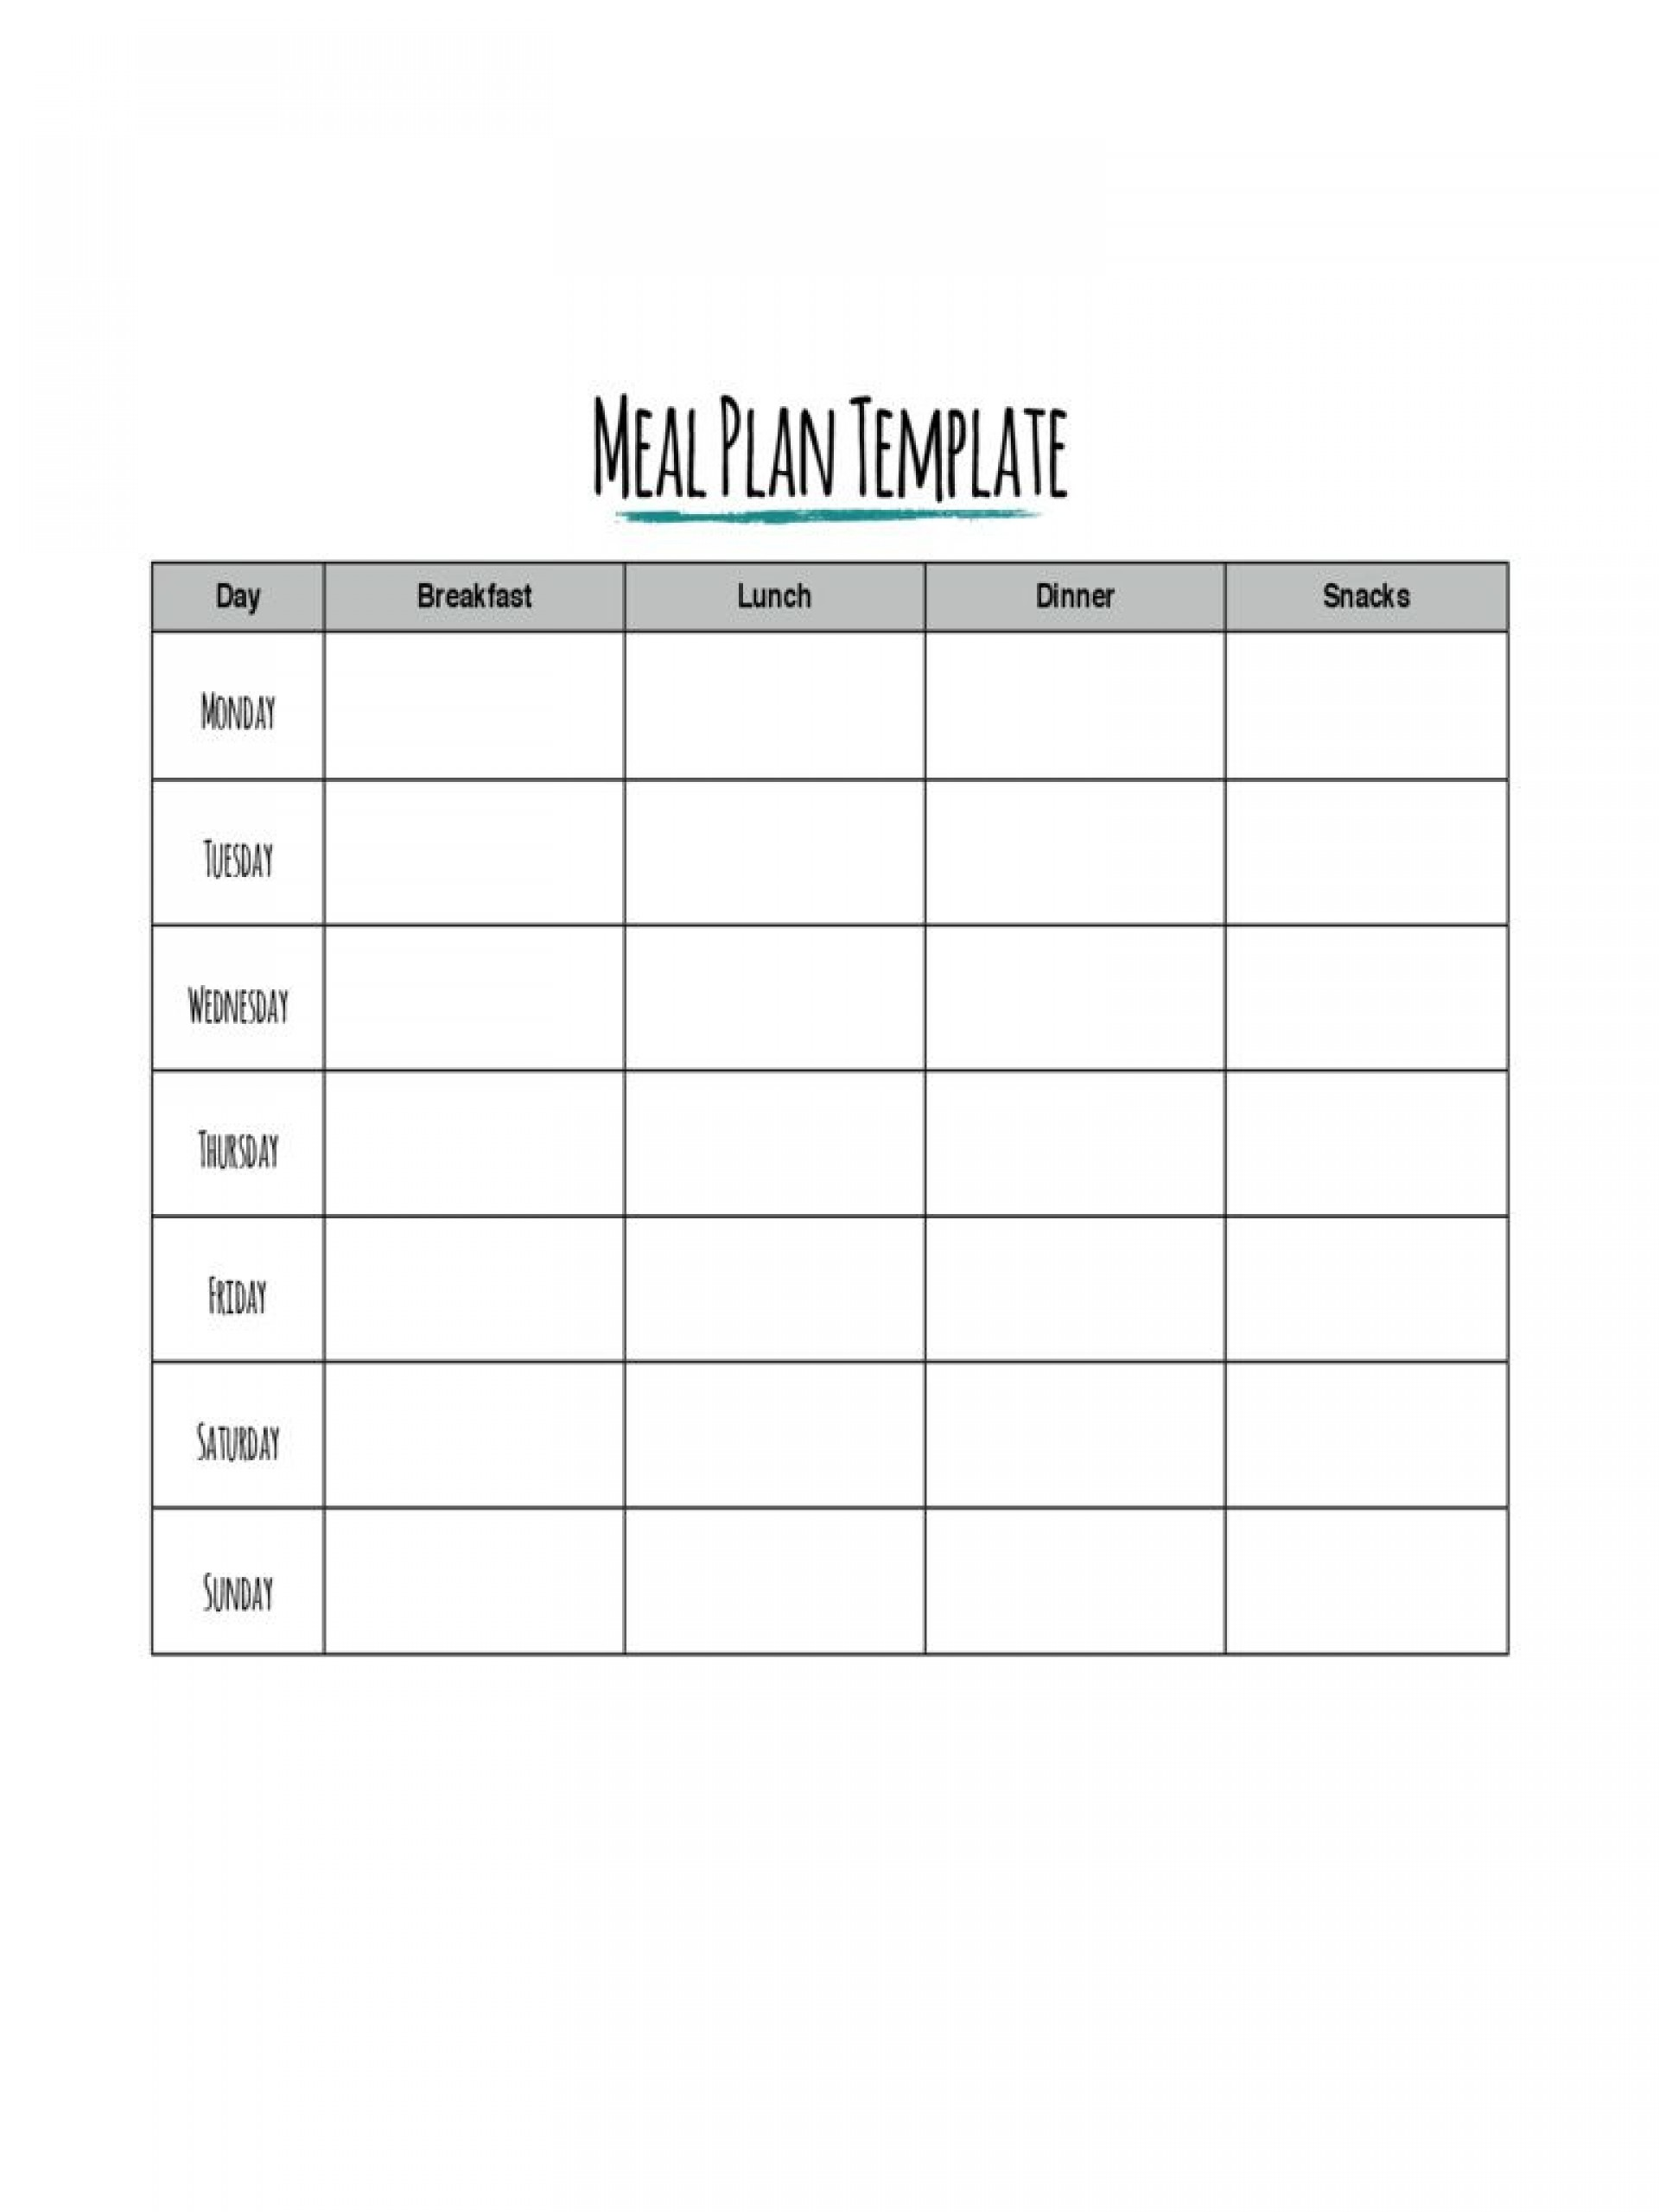 Daily Meal Plan Template Pdf